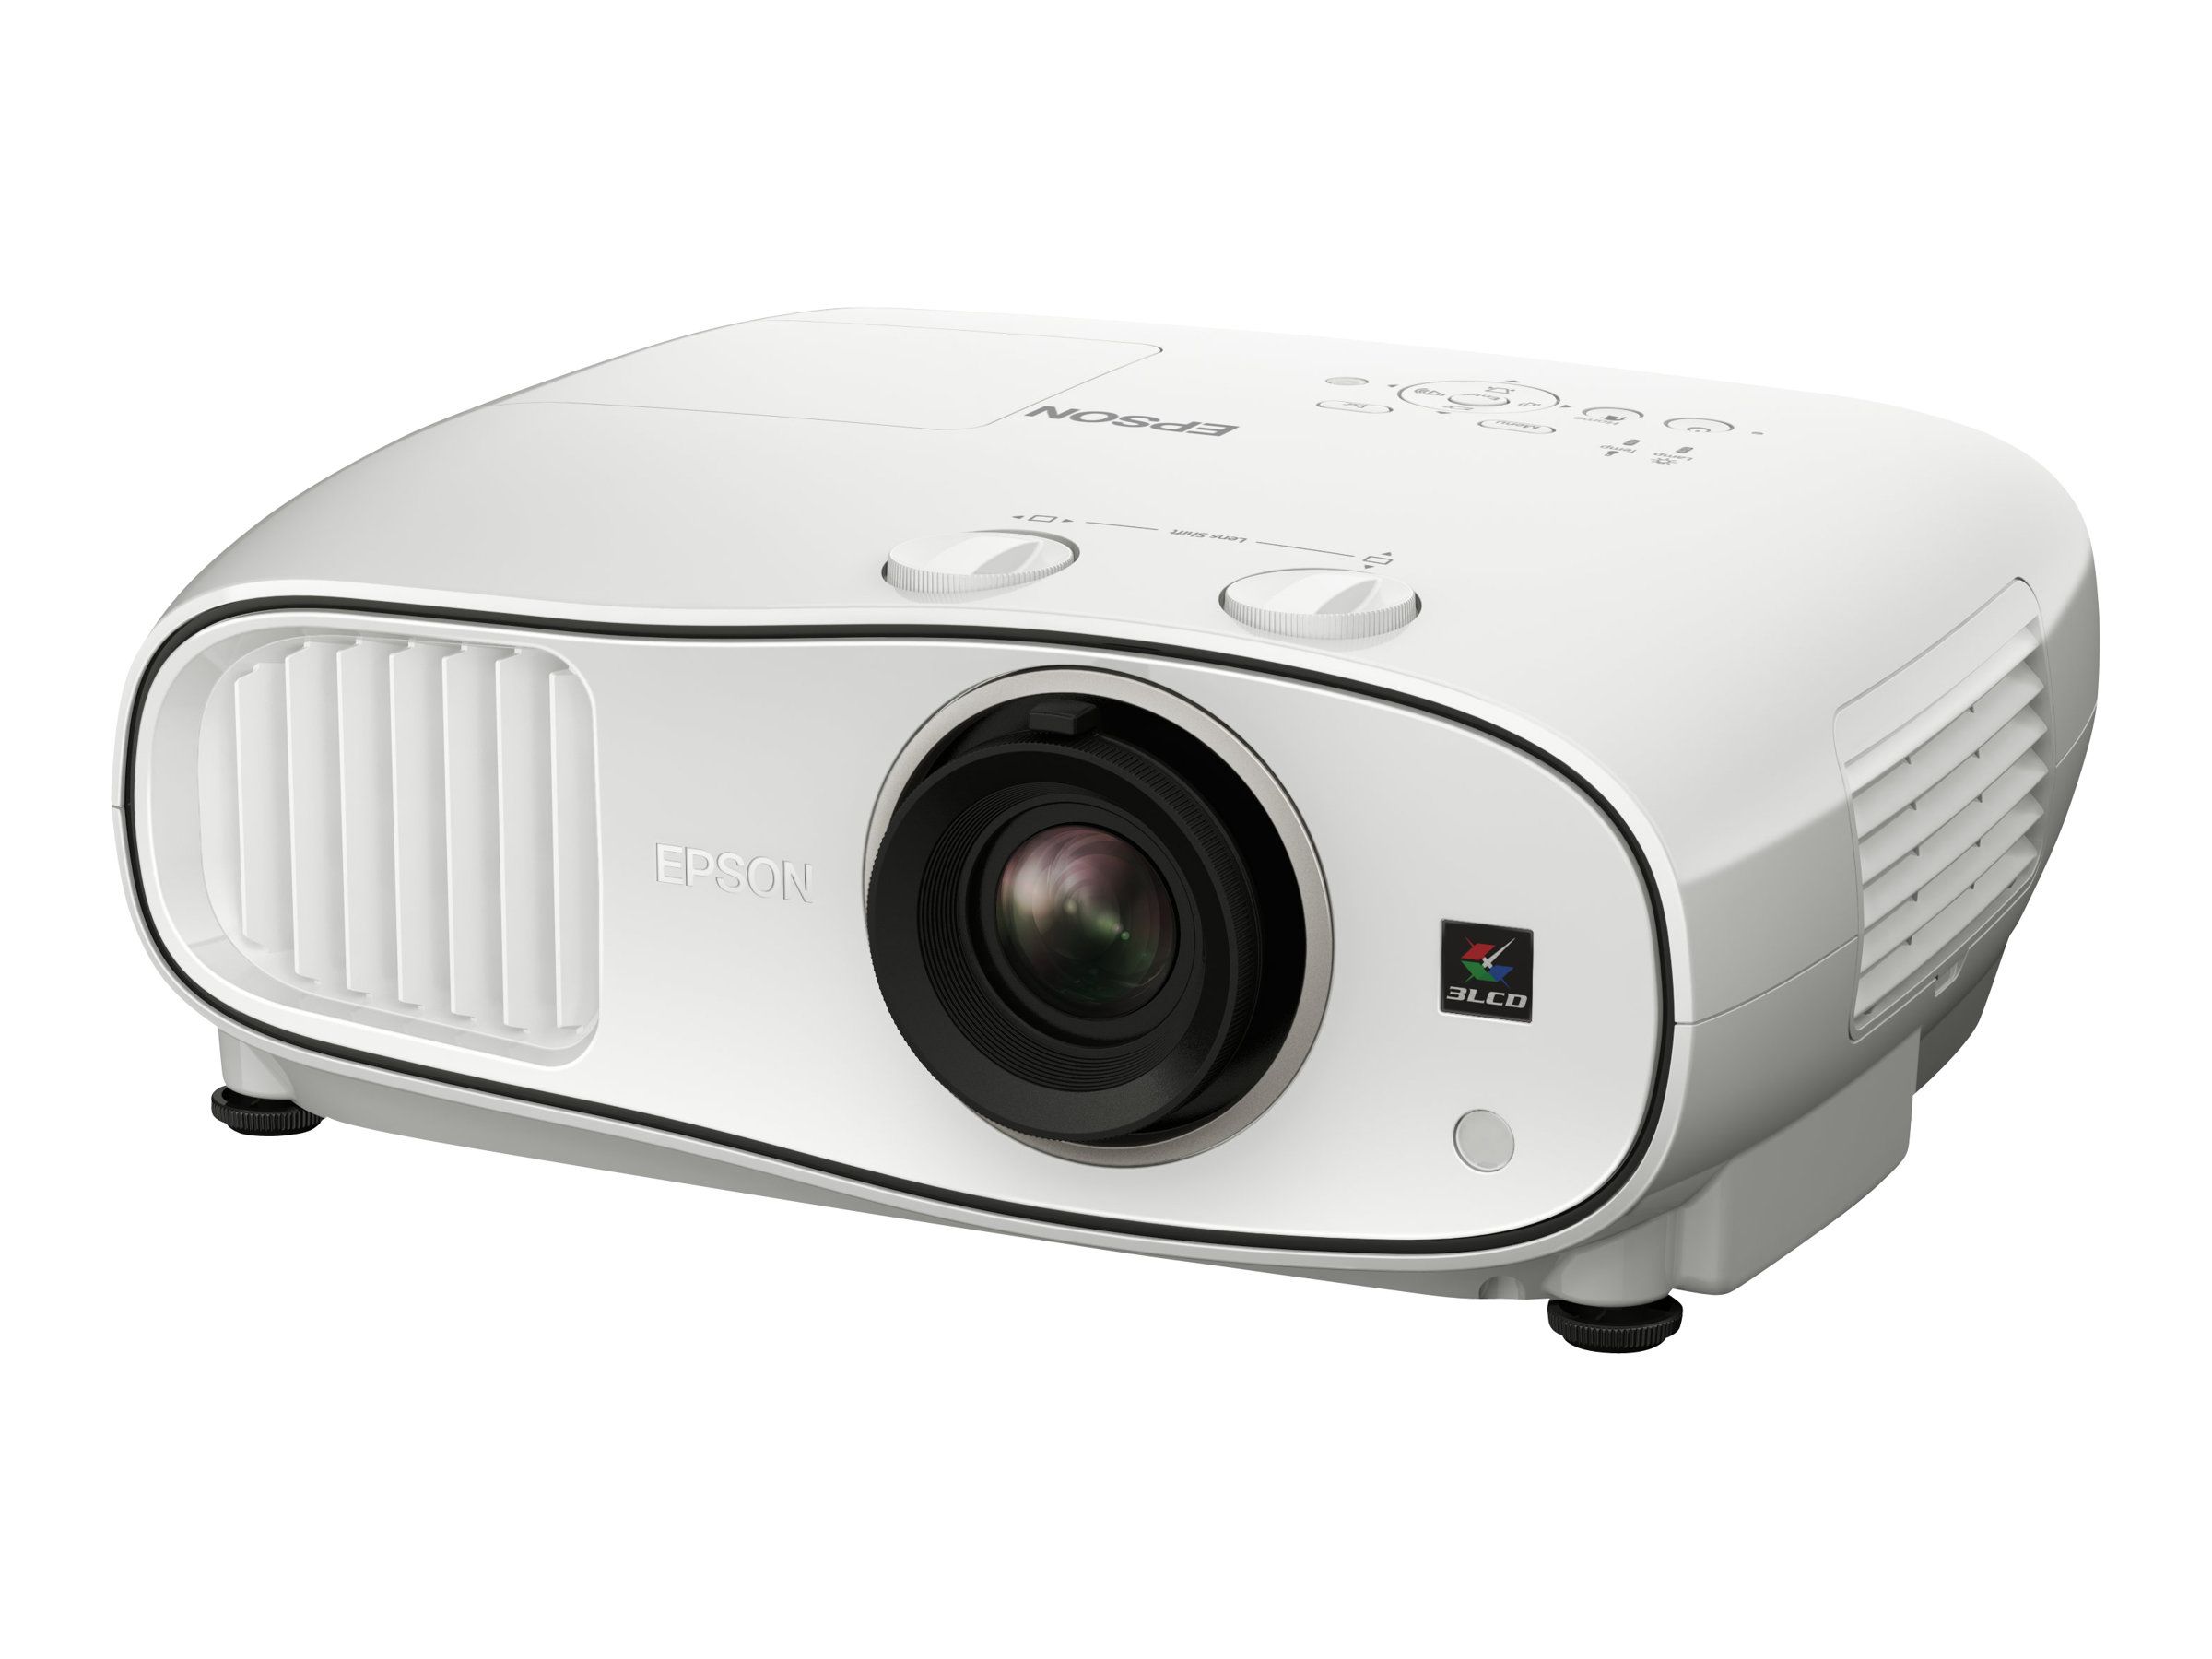 Epson EH-TW6700W - 3-LCD-Projektor - 3D - 3000 lm (white) - 3000 lm (Farbe) - Full HD (1920 x 1080)